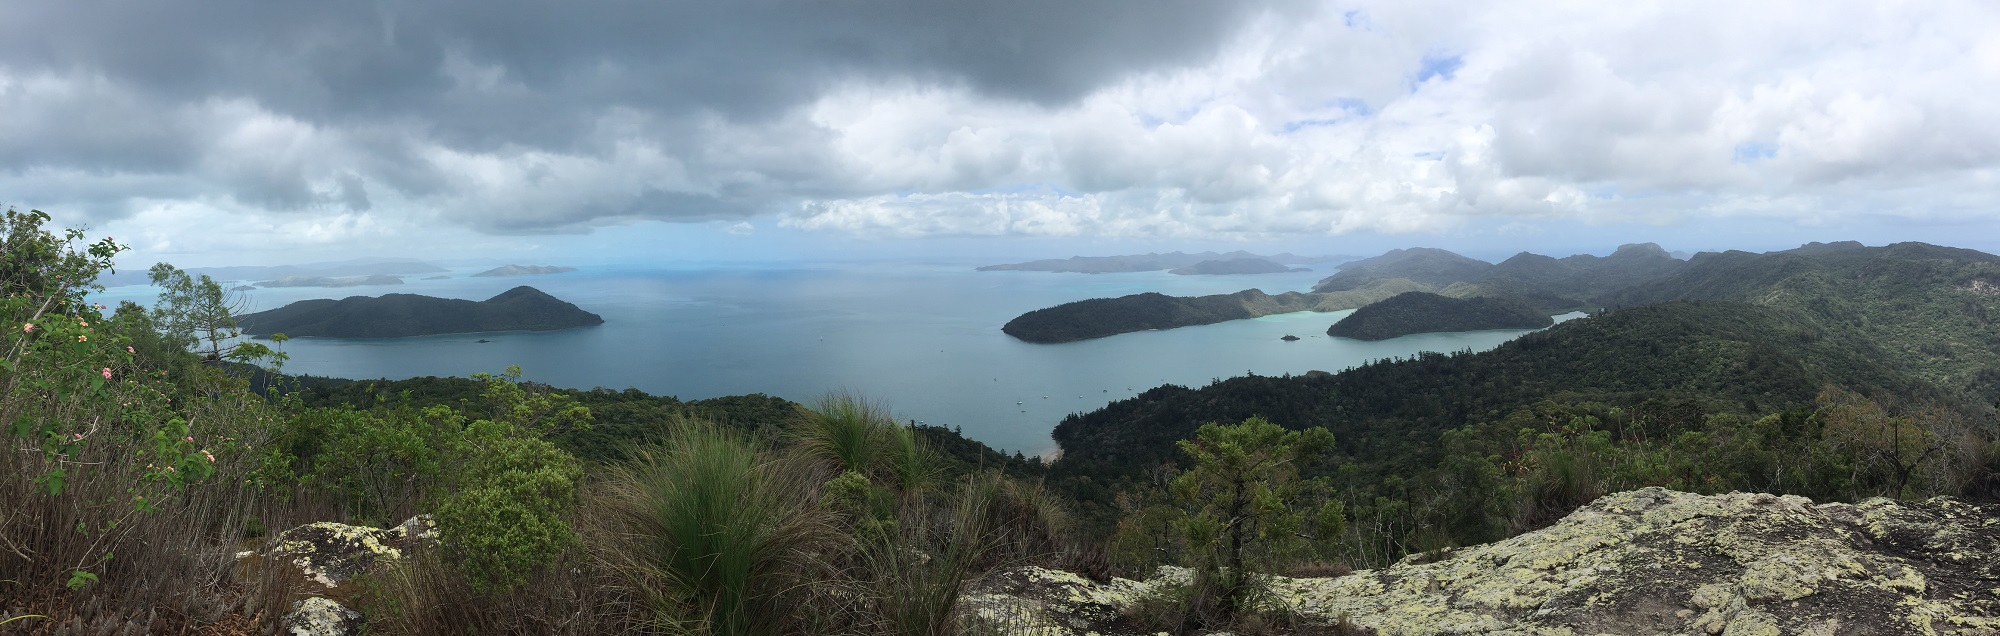 The view north from Whitsunday Peak. Cid Island on the left, Cid Harbour the protected area between the island and the headland jutting out from the right.